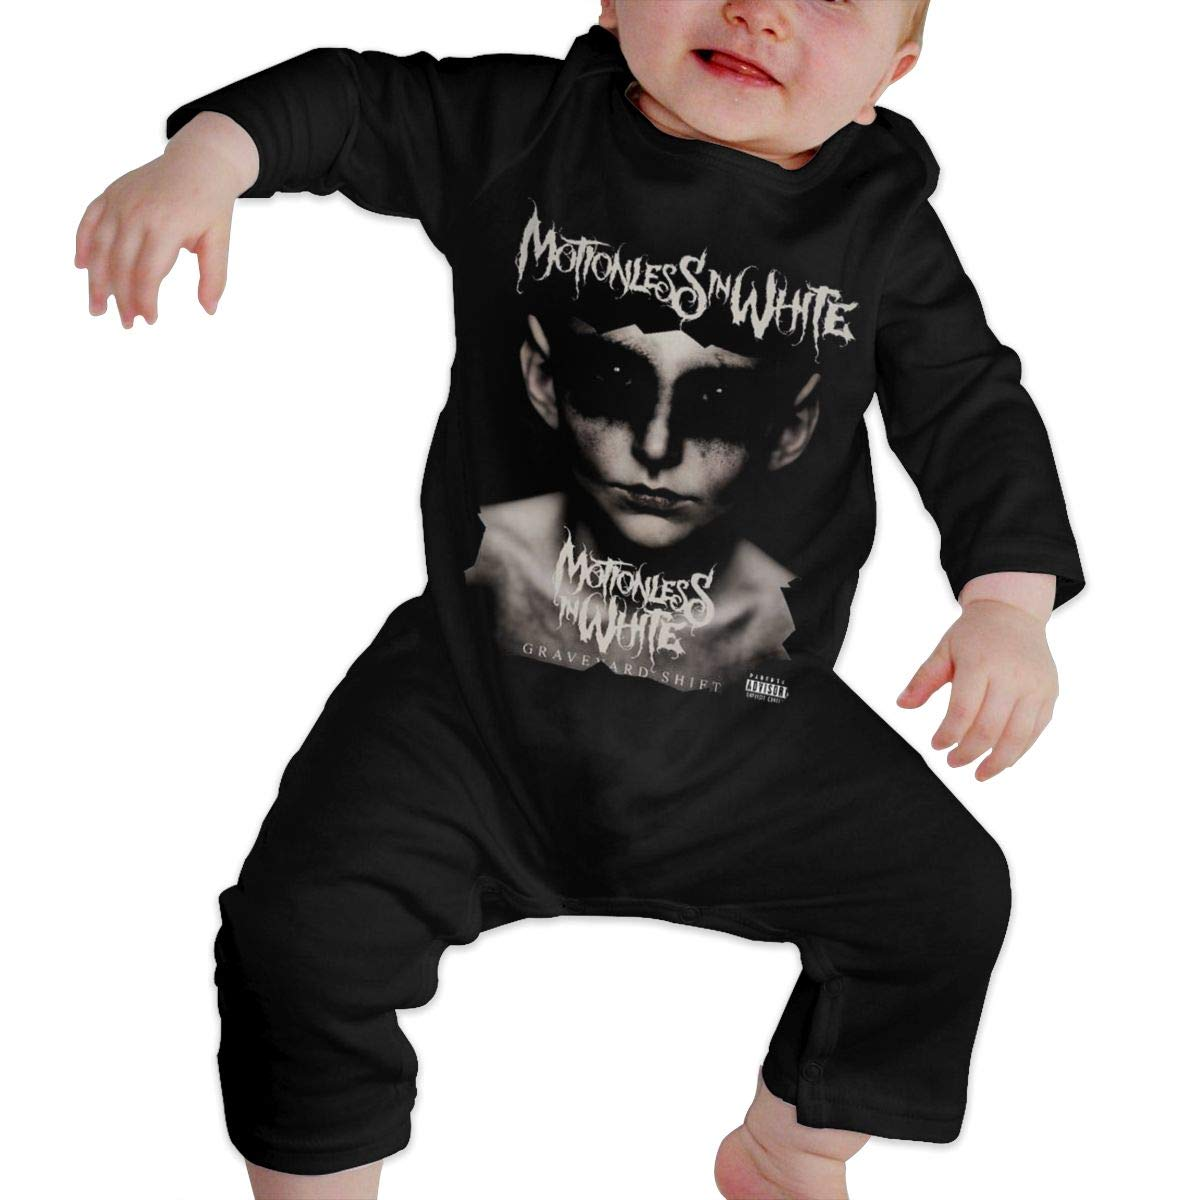 Kids Baby Long Sleeve Romper Motionless-in-White-2 Unisex Cotton Cute Jumpsuit Baby Crawler Clothes